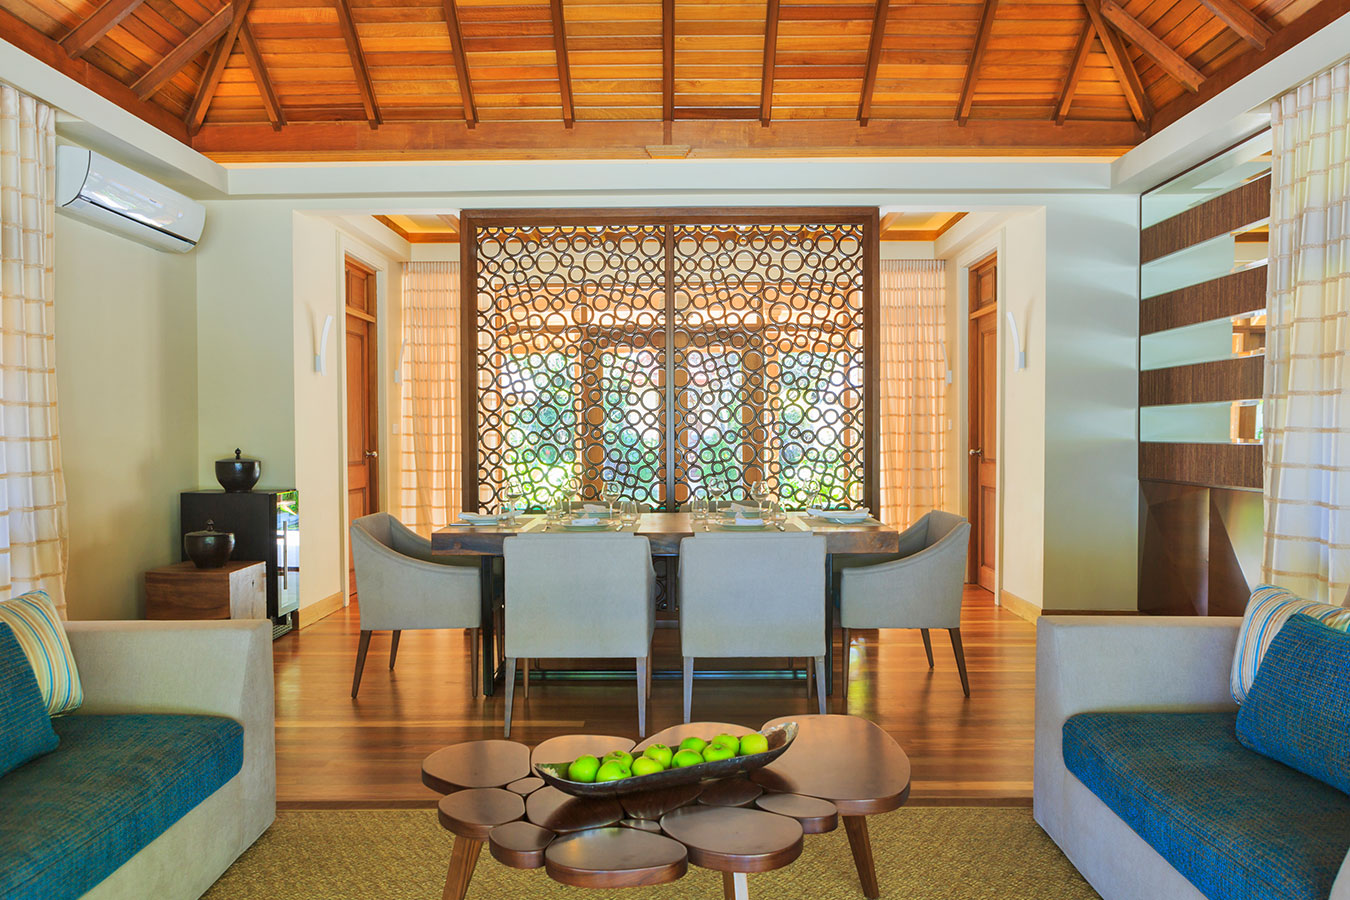 Kurumba Maldives - Royal Residence Lounge Image - Maldives Resorts Pool Villa